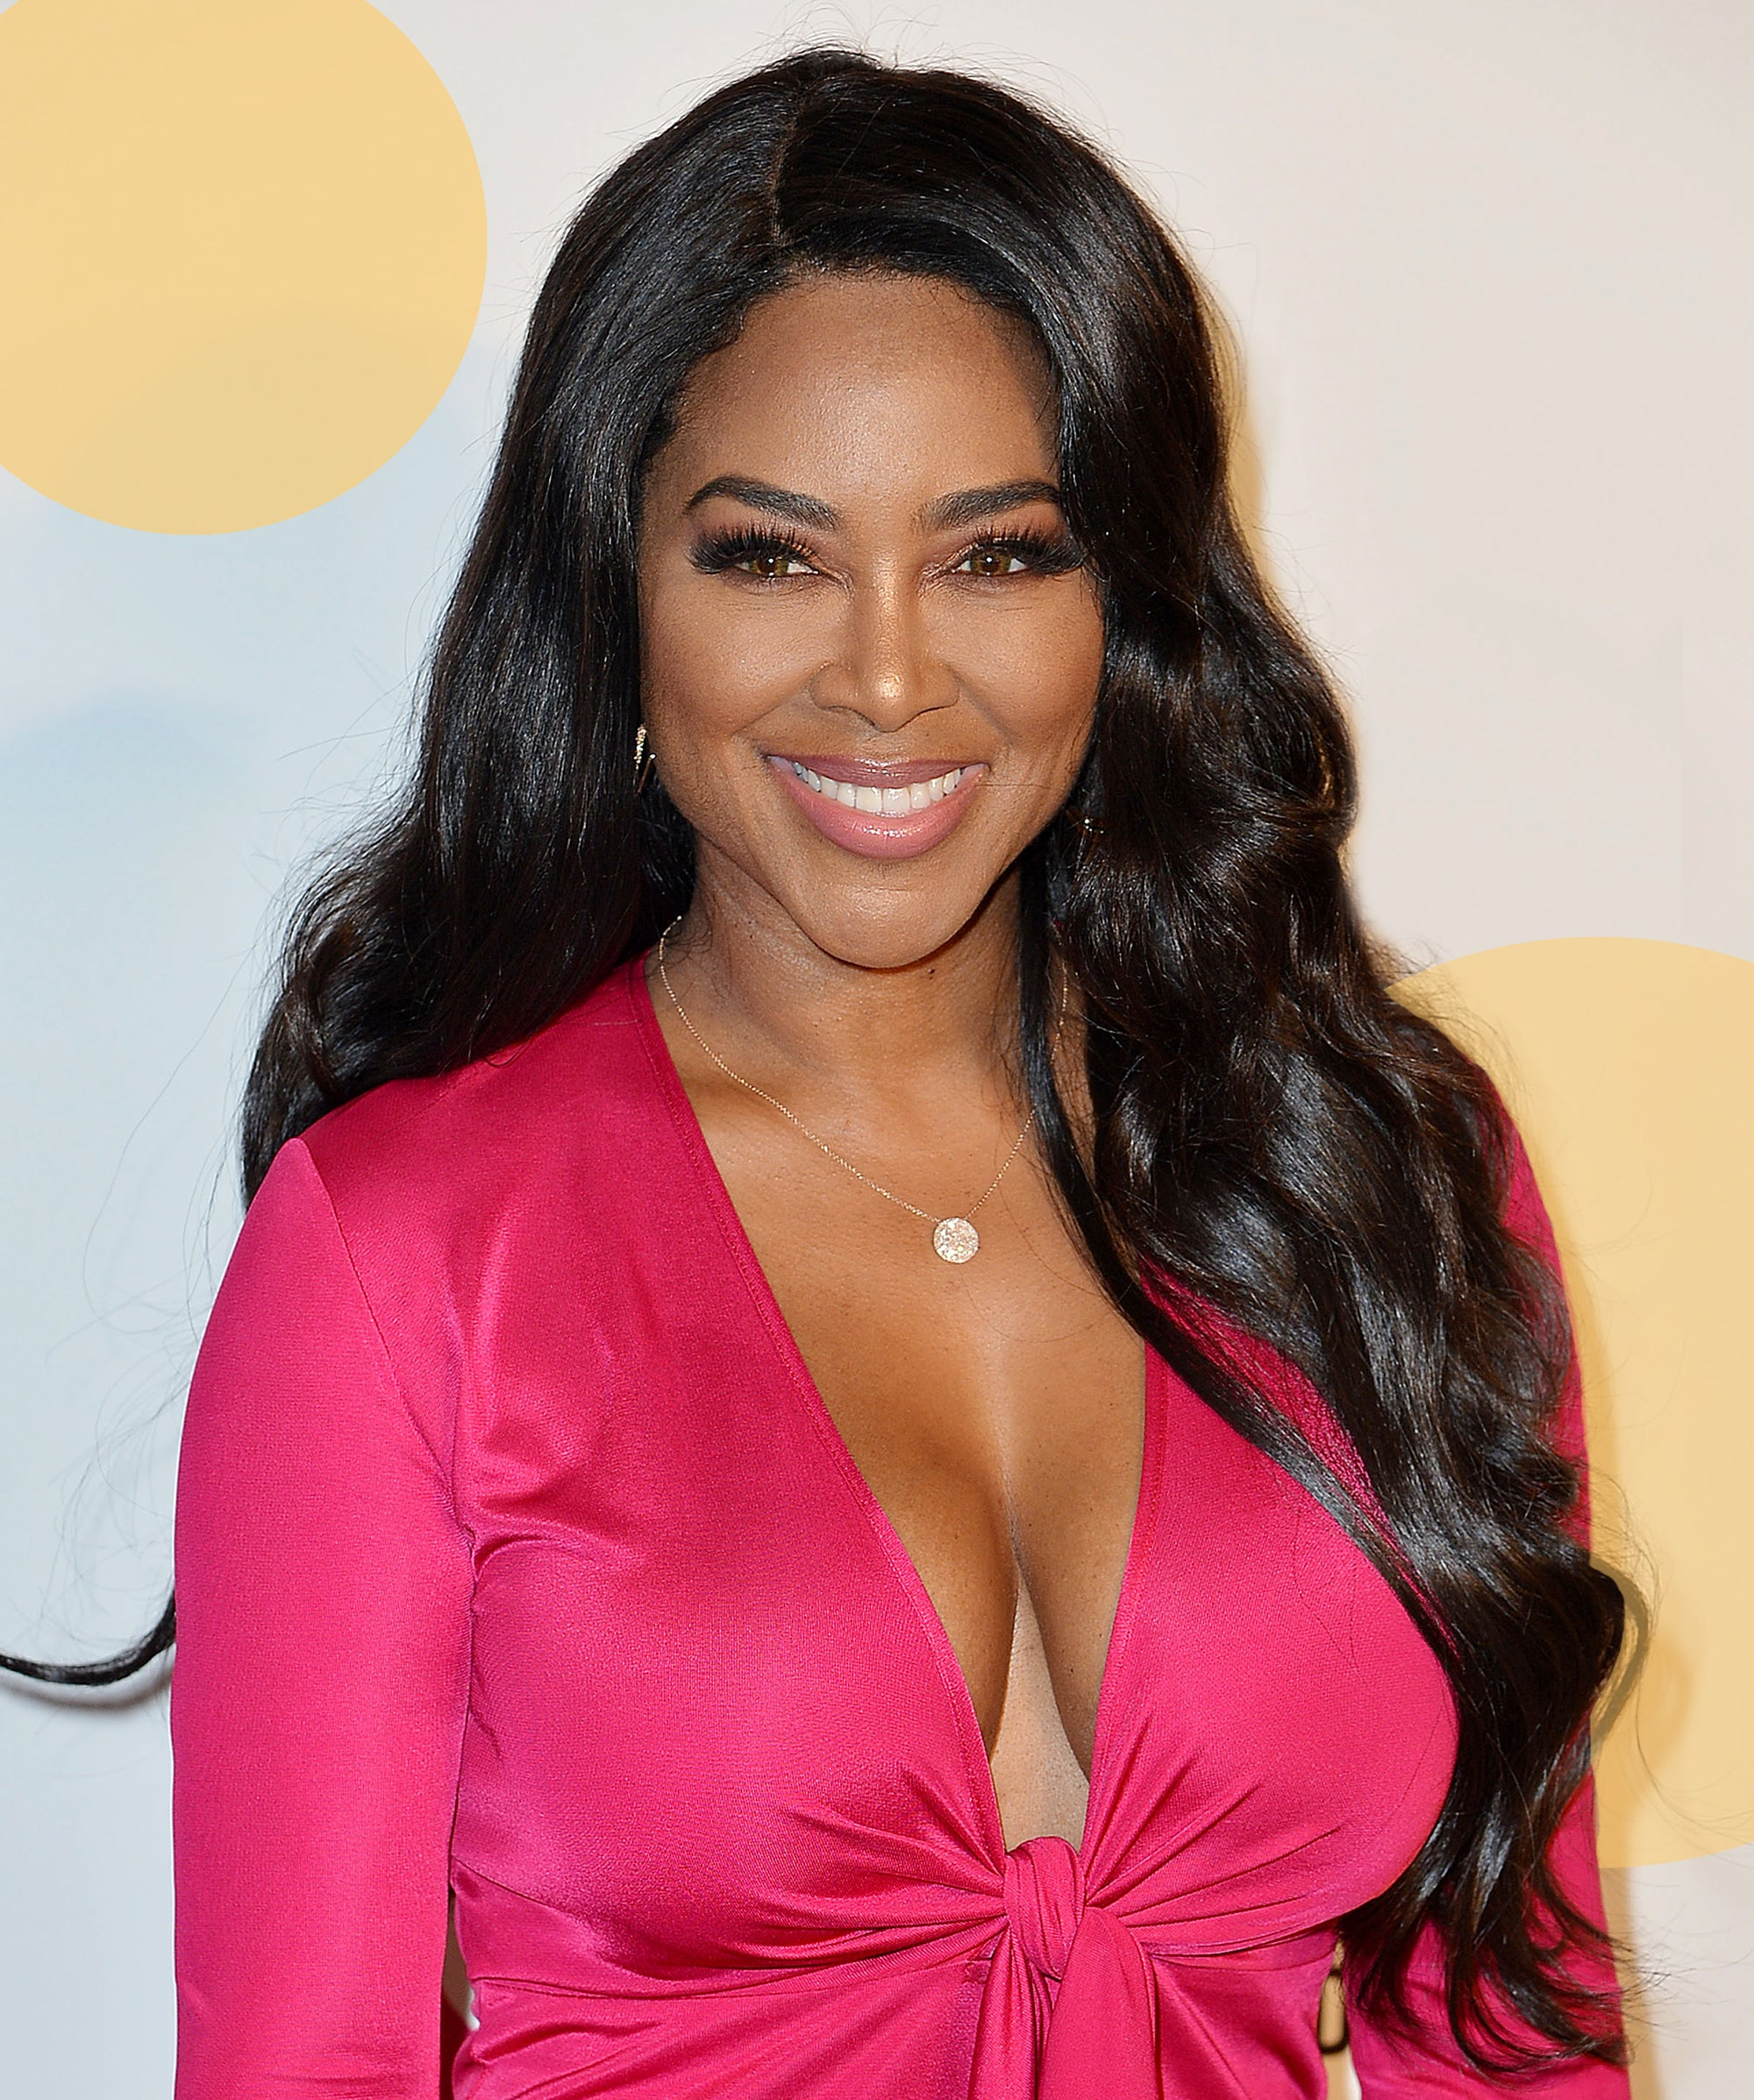 Kenya Moore Shares Ultrasound Of Baby Daly Moving Its Little Arms